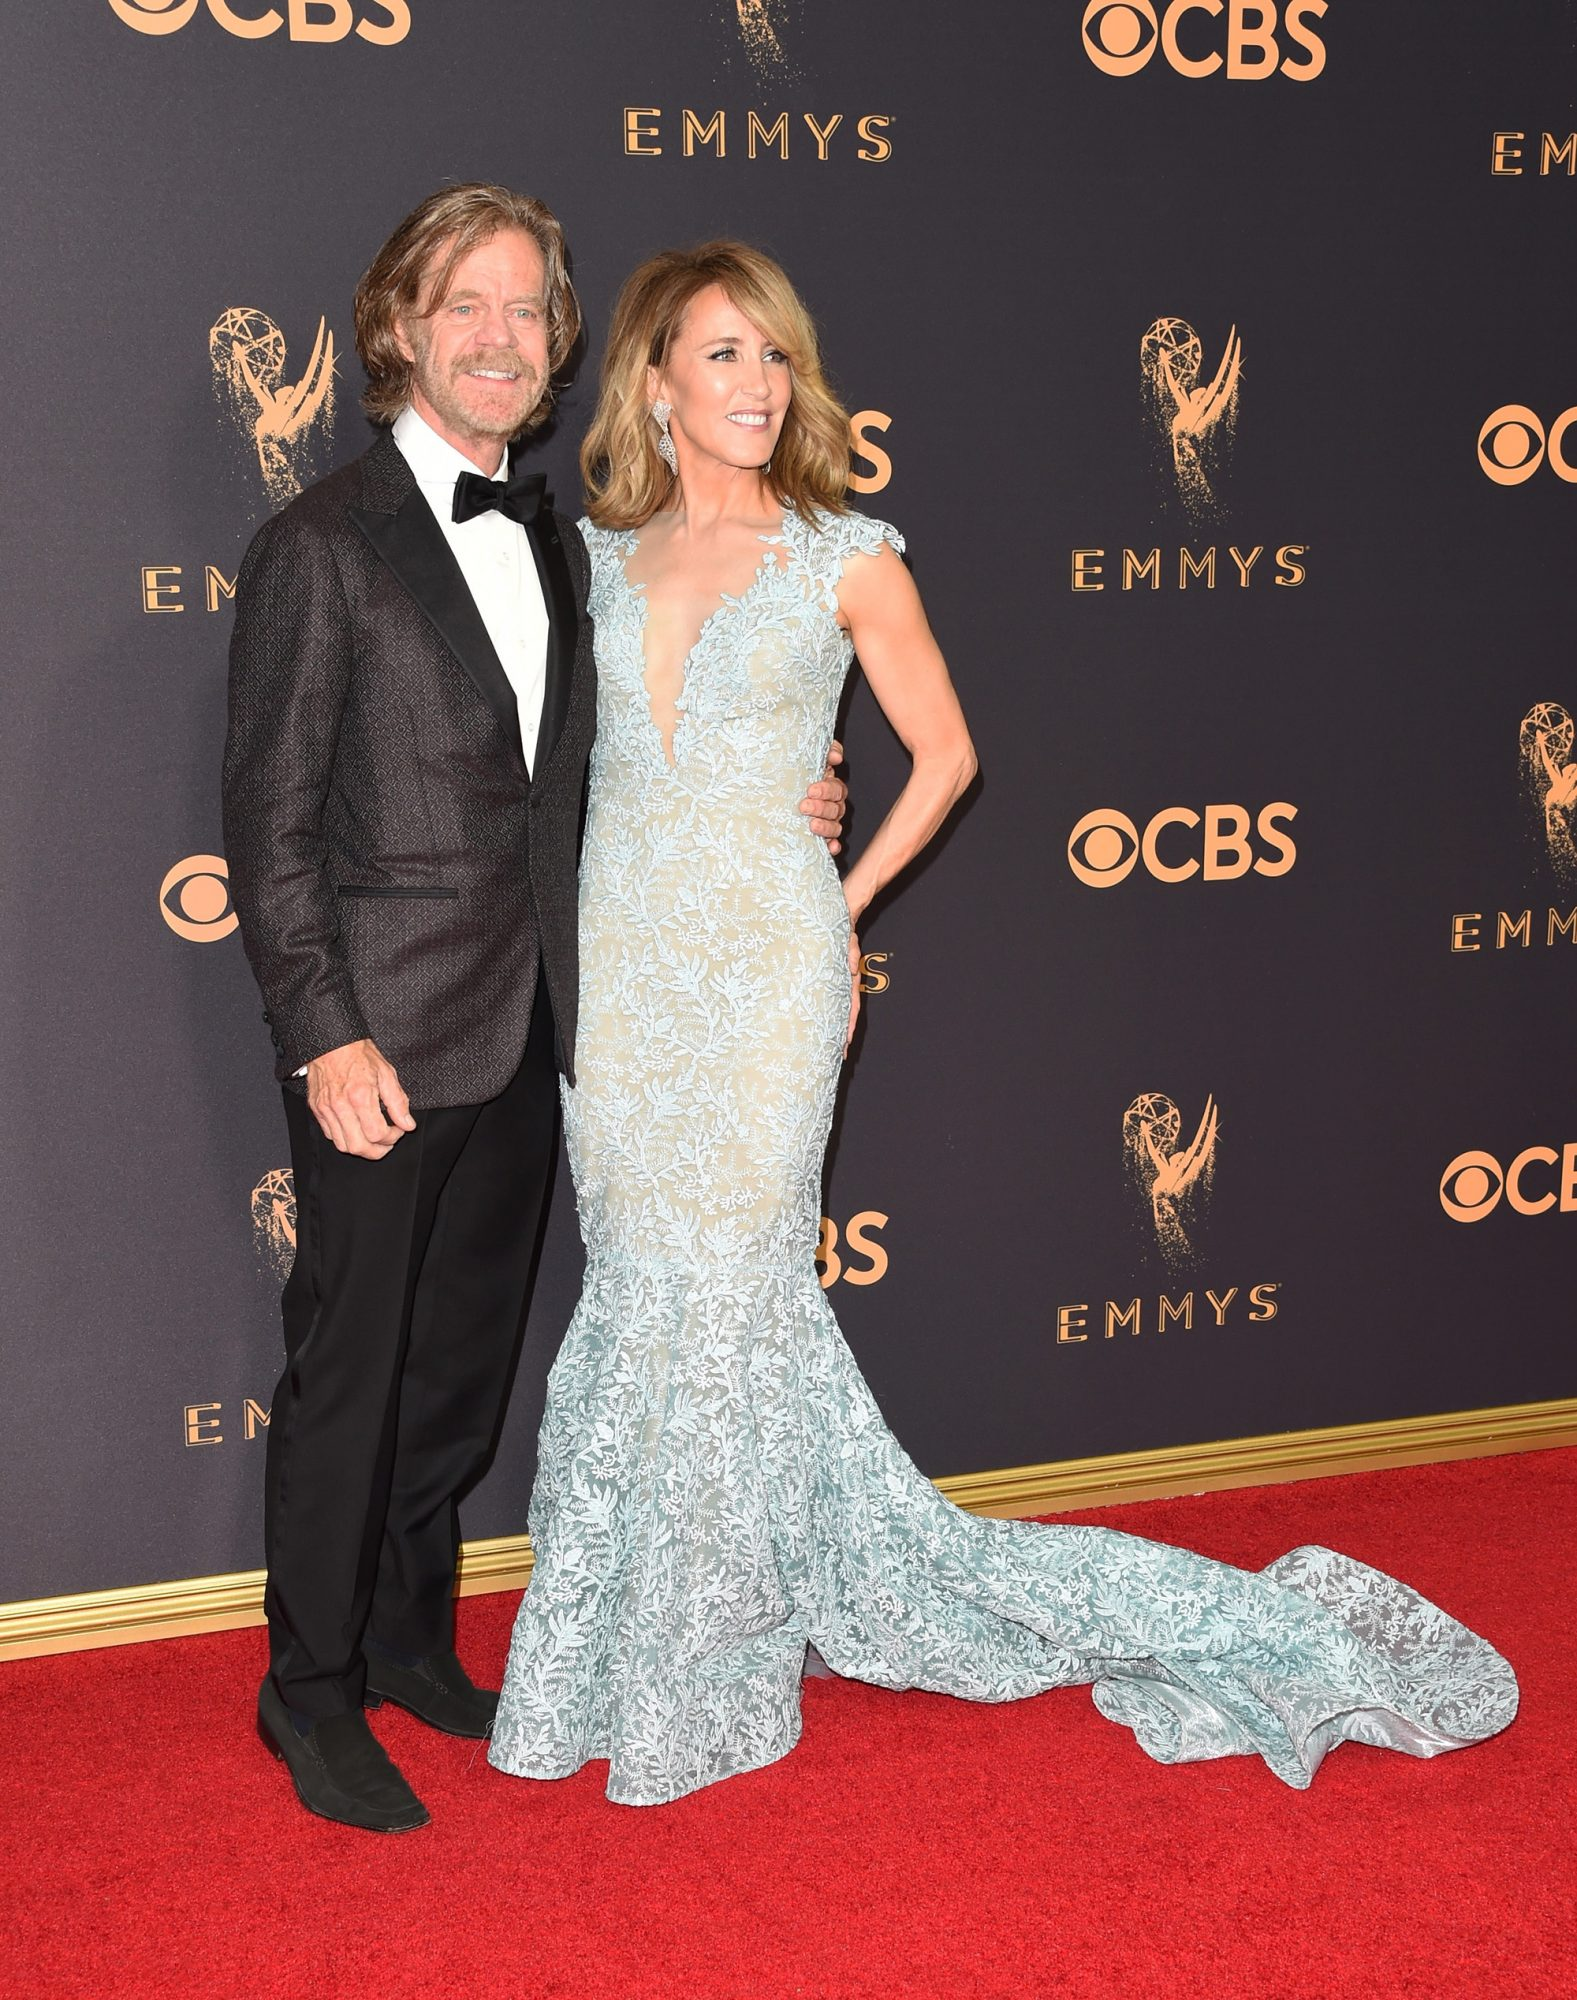 William H. Macy and Felicity Huffman Emmys 2017